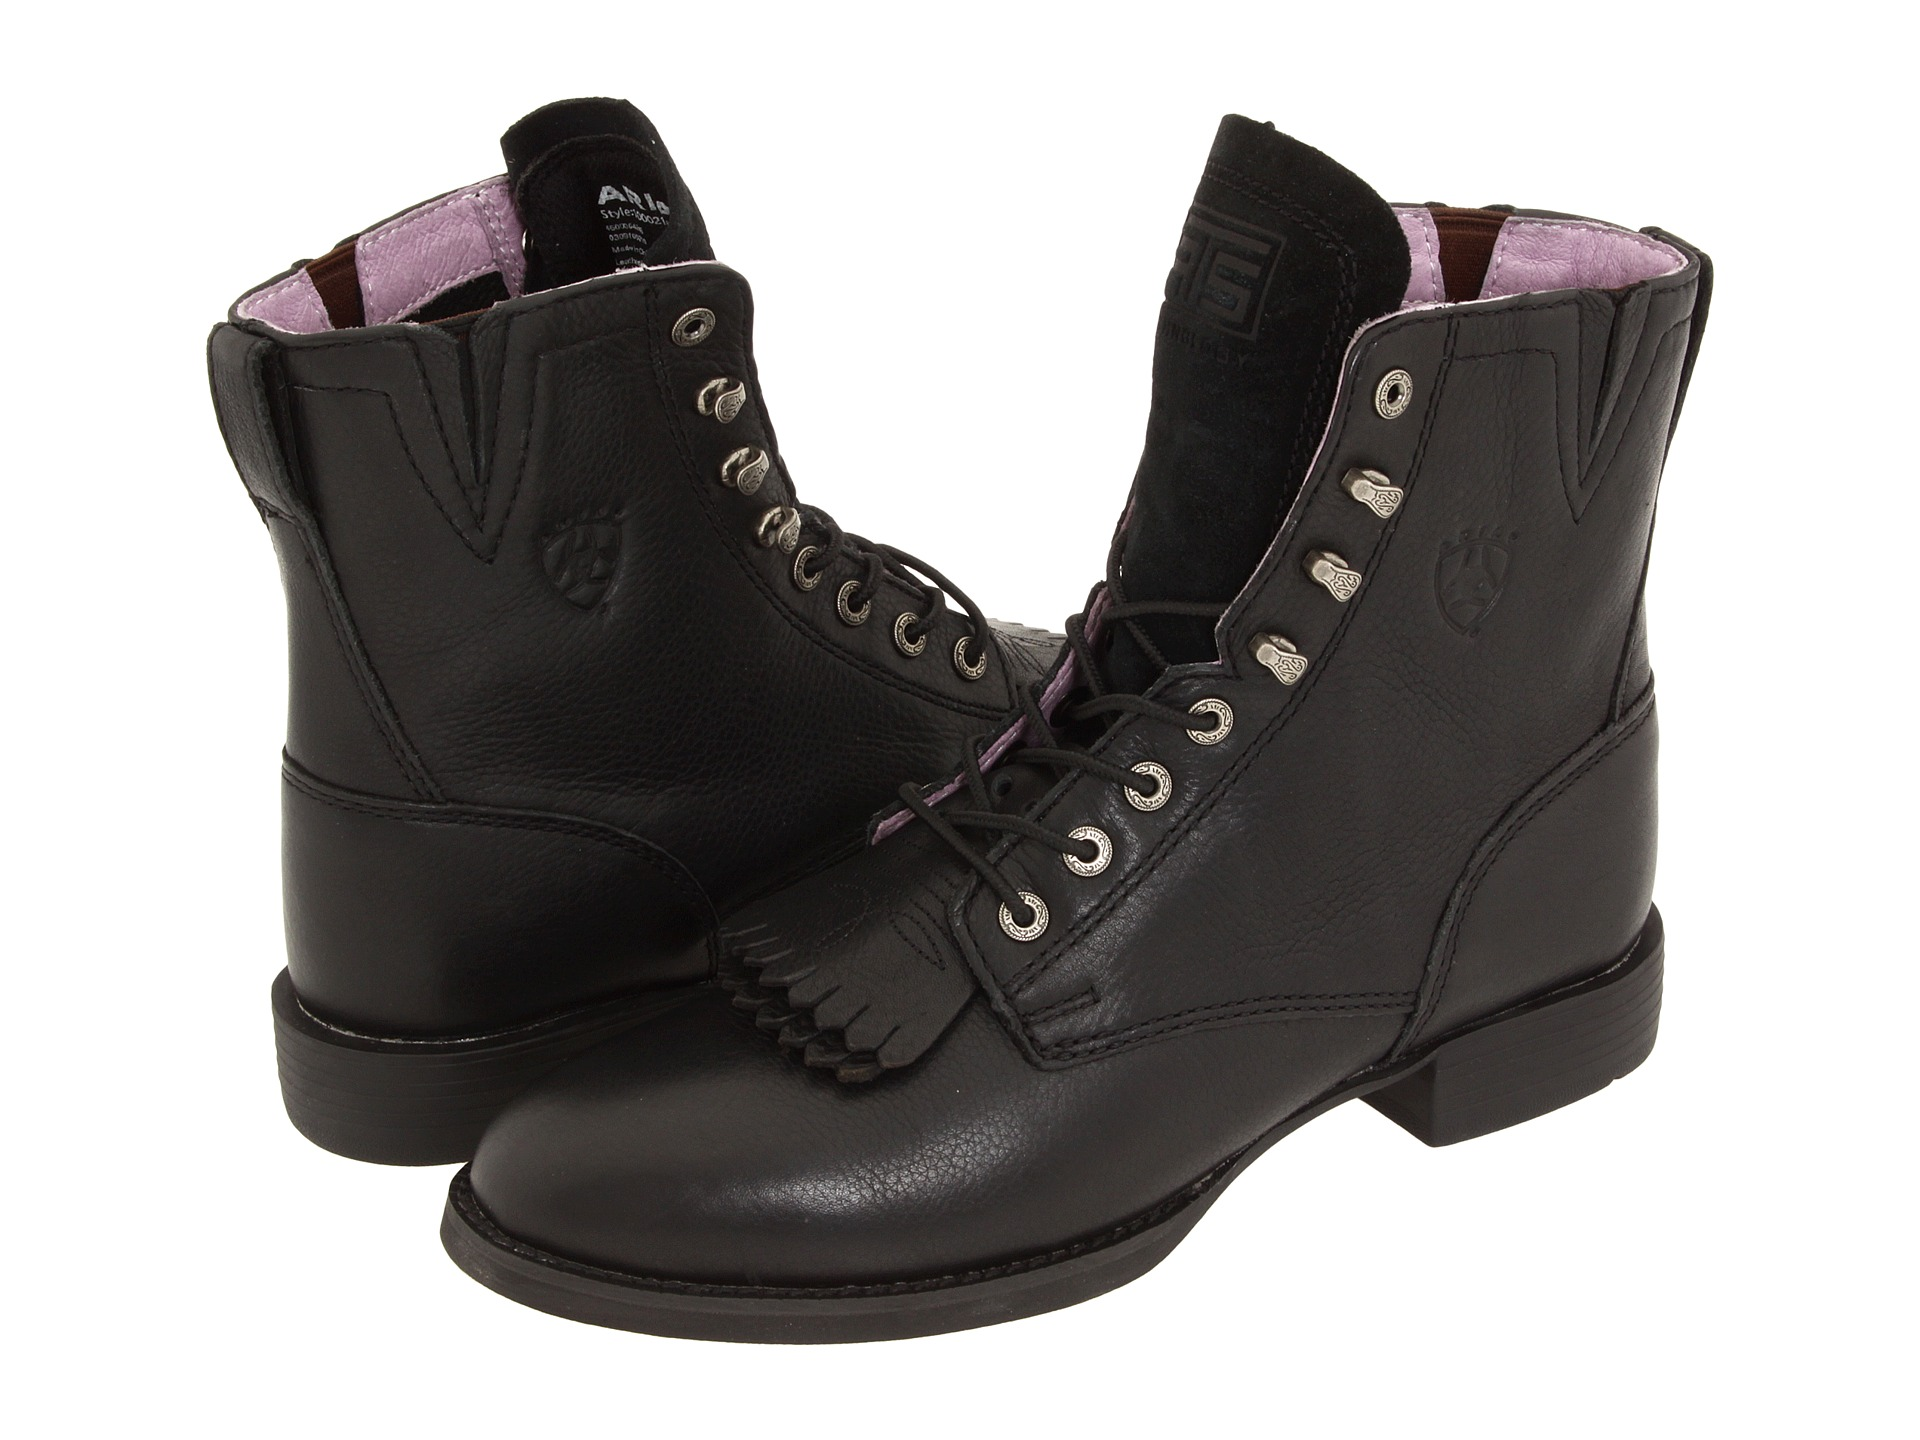 Ariat Heritage Lacer II - Zappos.com Free Shipping BOTH Ways